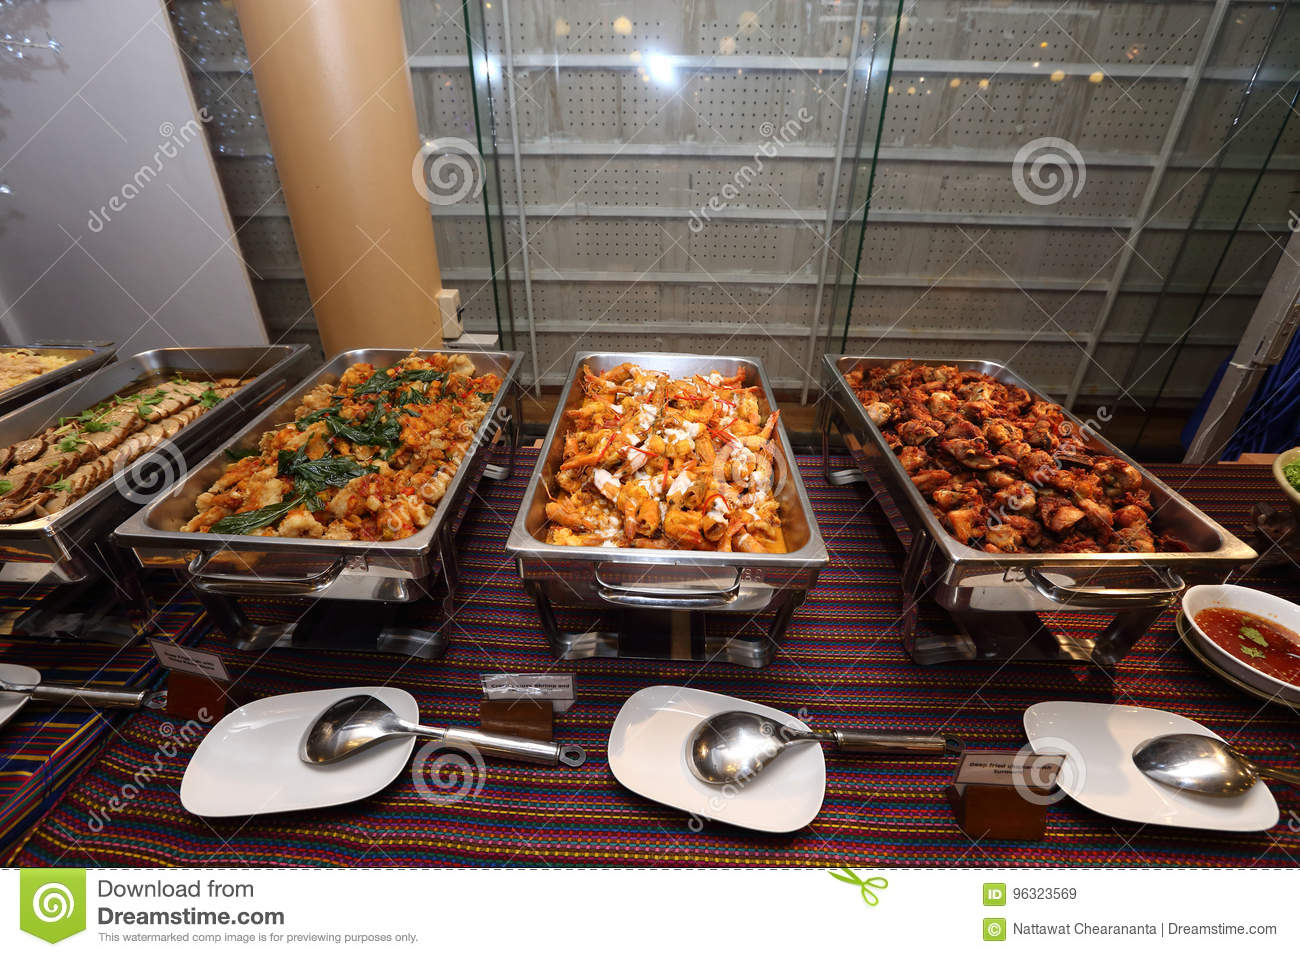 Hot Cuisine Thai Spicy Food In Buffet Catering Plate Ready To Eat